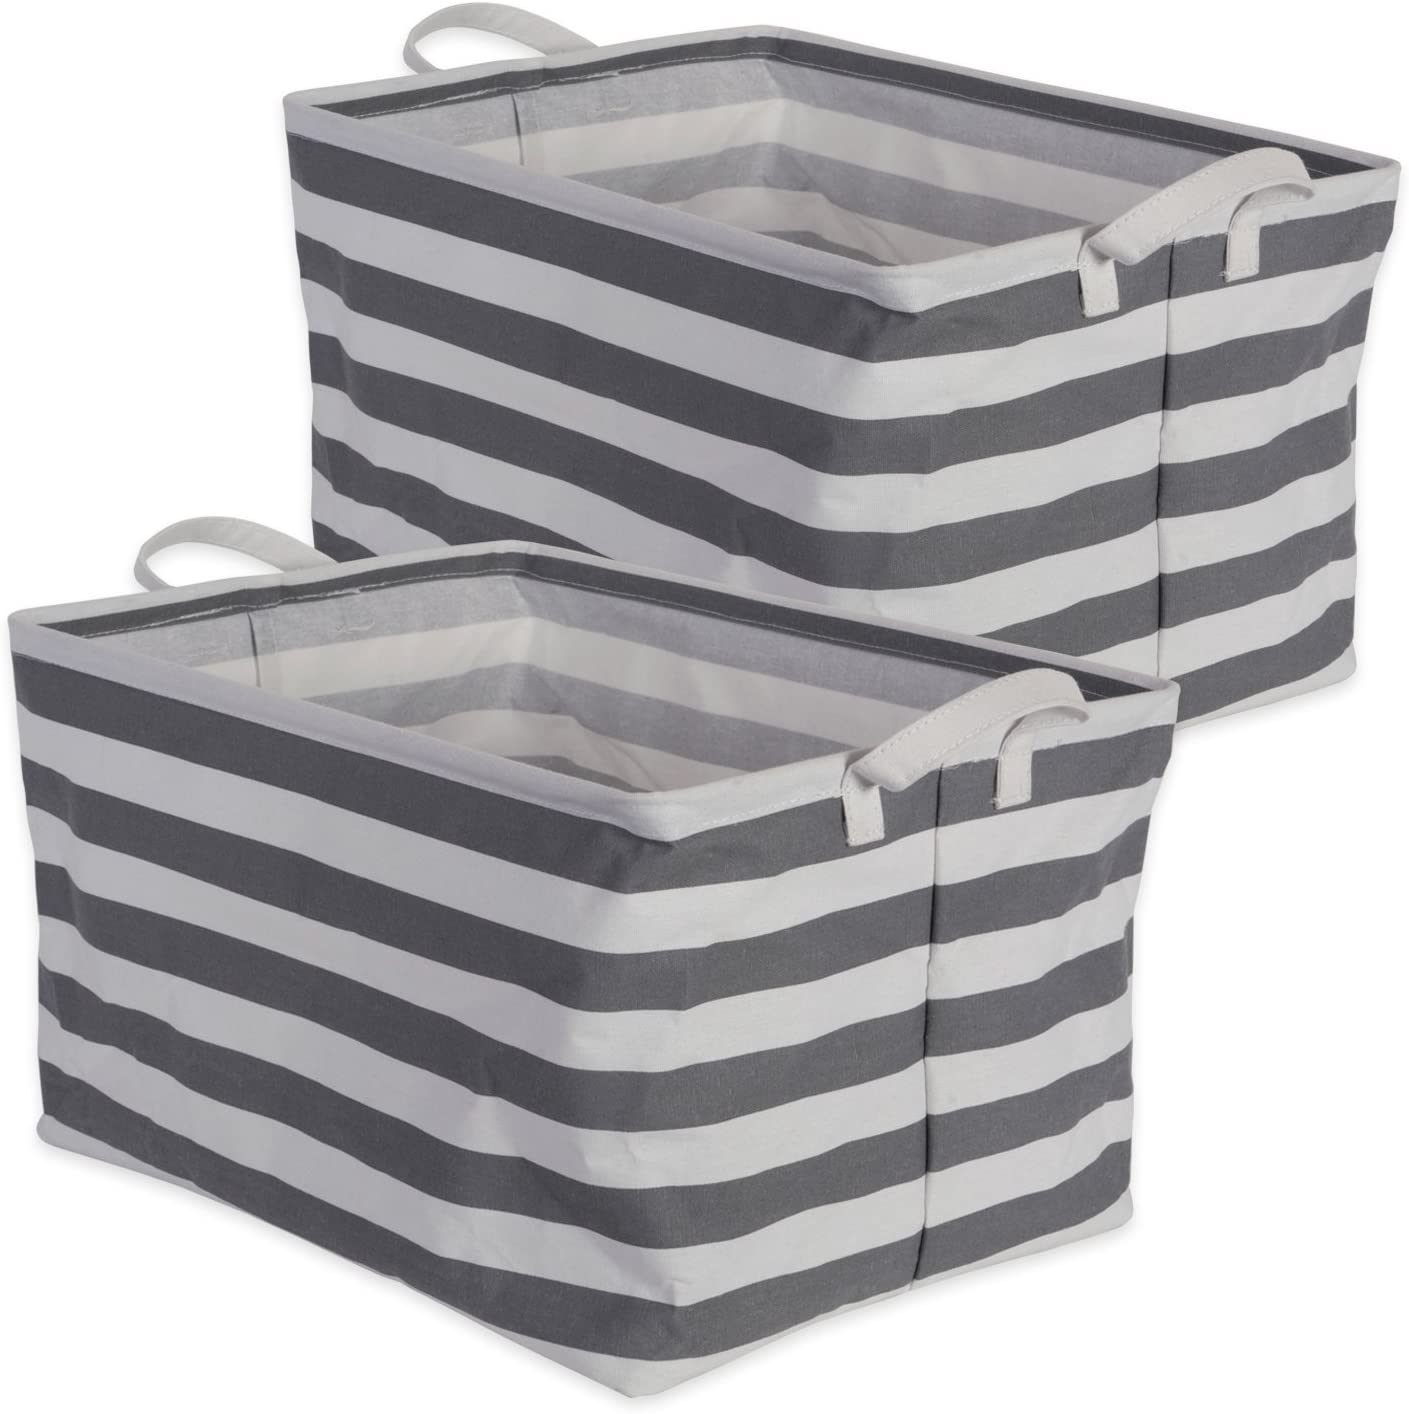 "DII Cotton/Polyester Cube Laundry Basket, Perfect In Your Bedroom, Nursery, Dorm, Closet, 10.5 x 17.5 x 10"", Large Set of 2 - Gray Rugby Stripe"